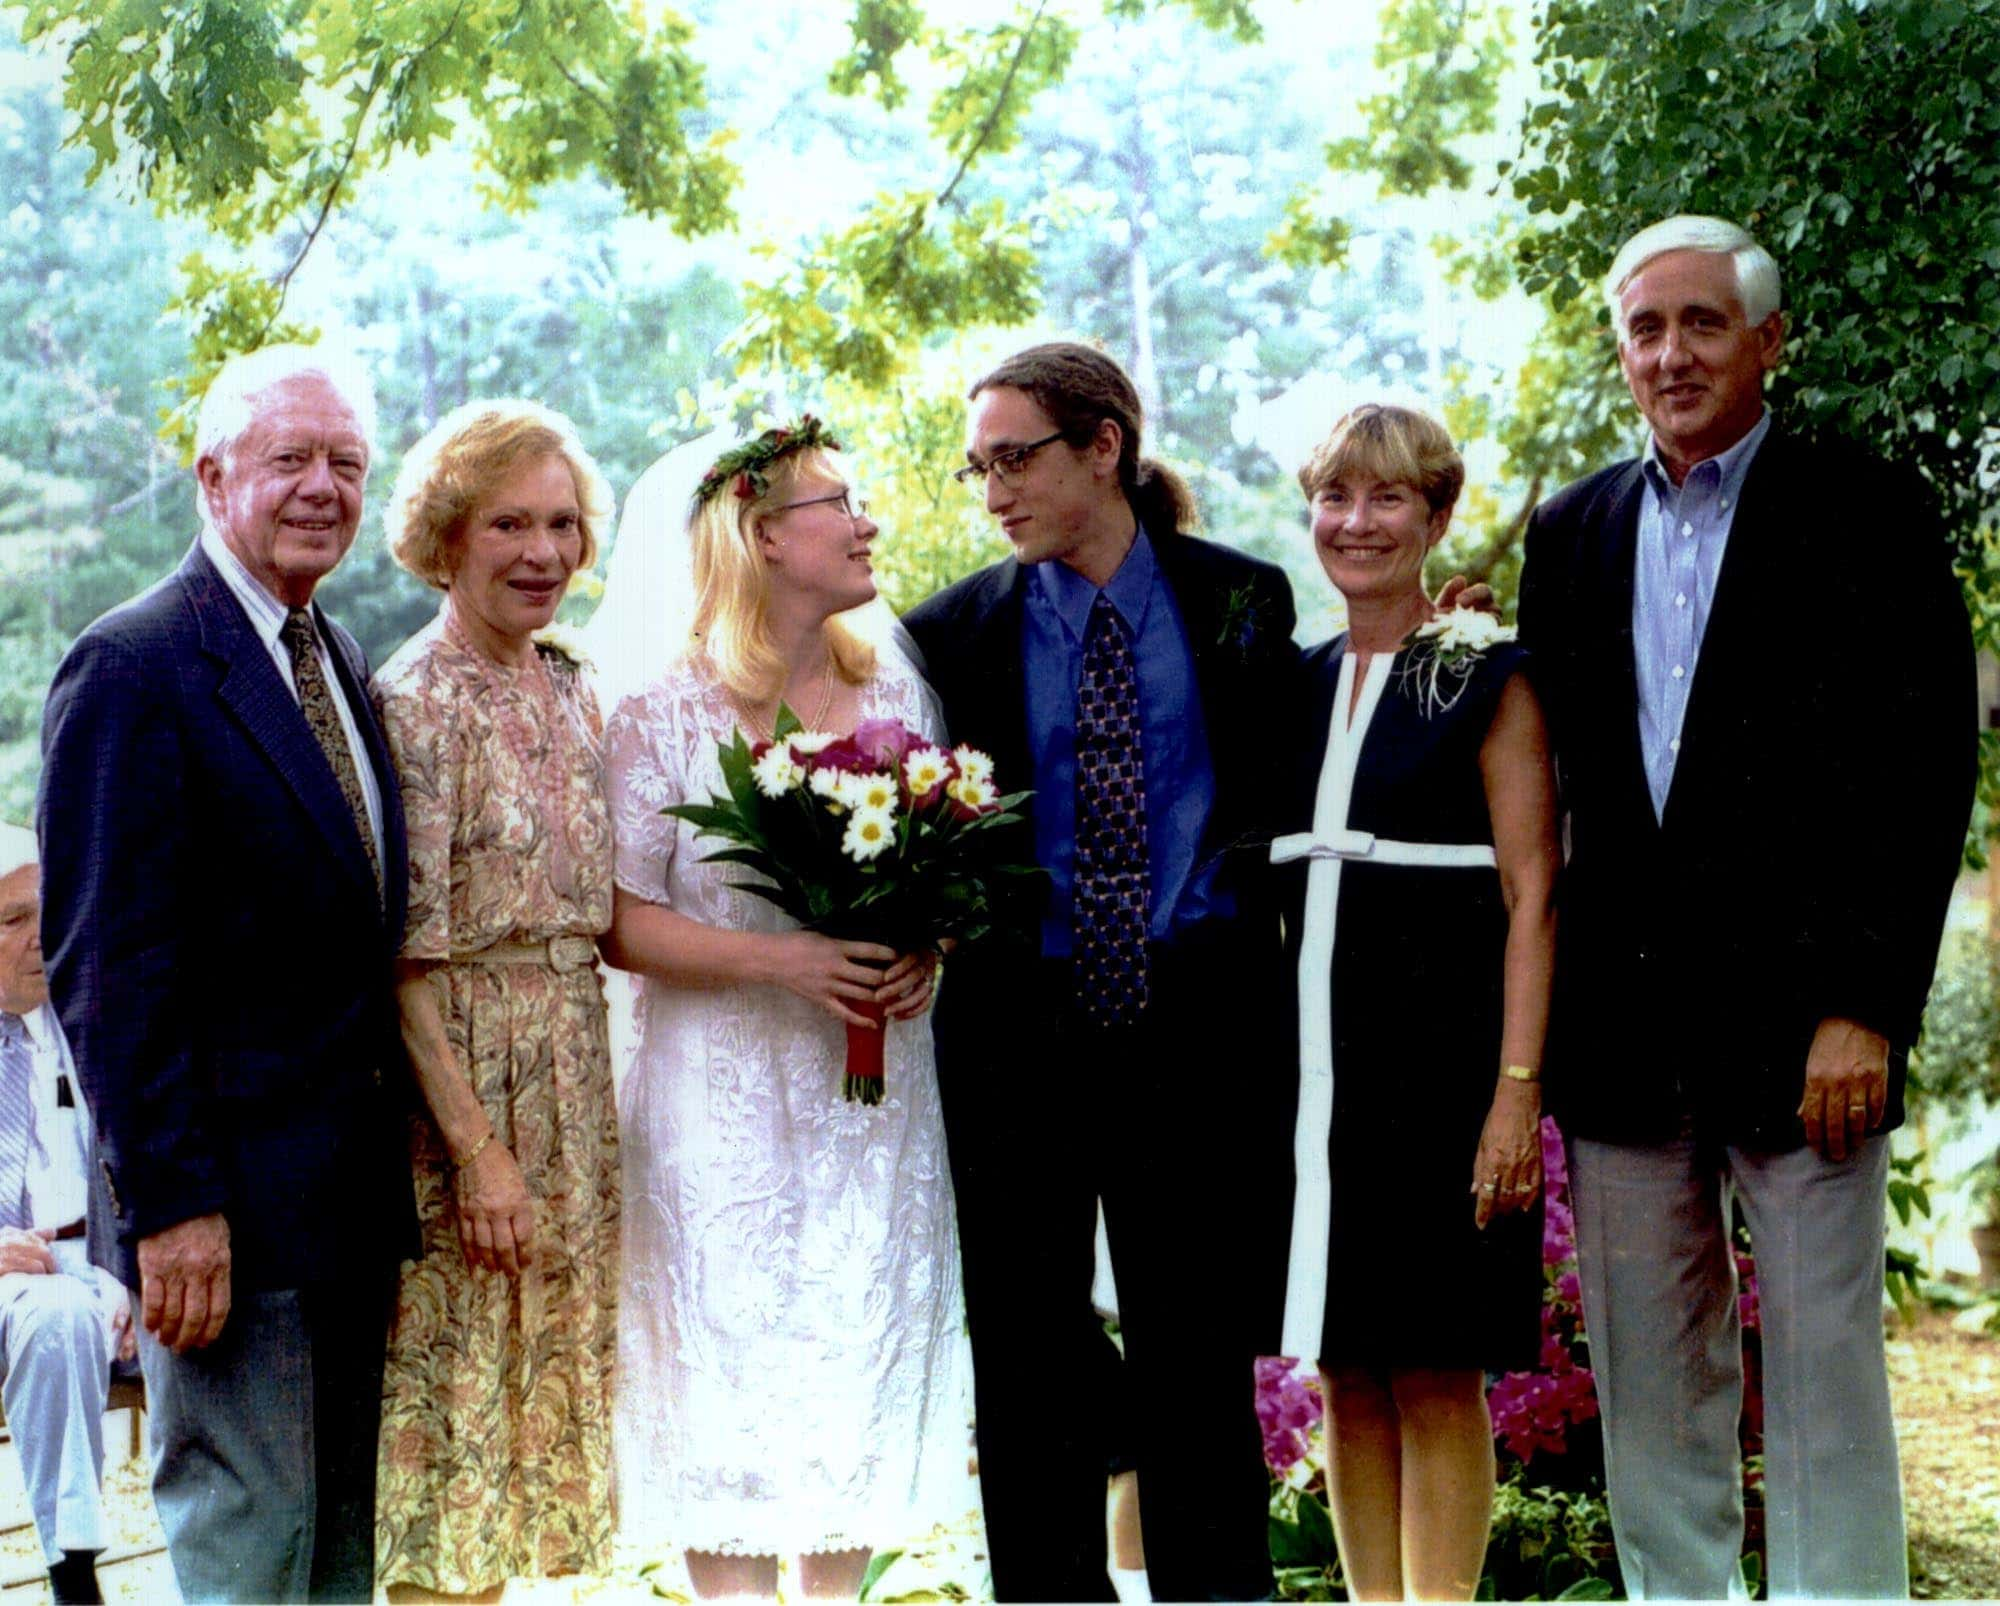 Where is Jimmy Carter's daughter today? - Amy Carter's Bio